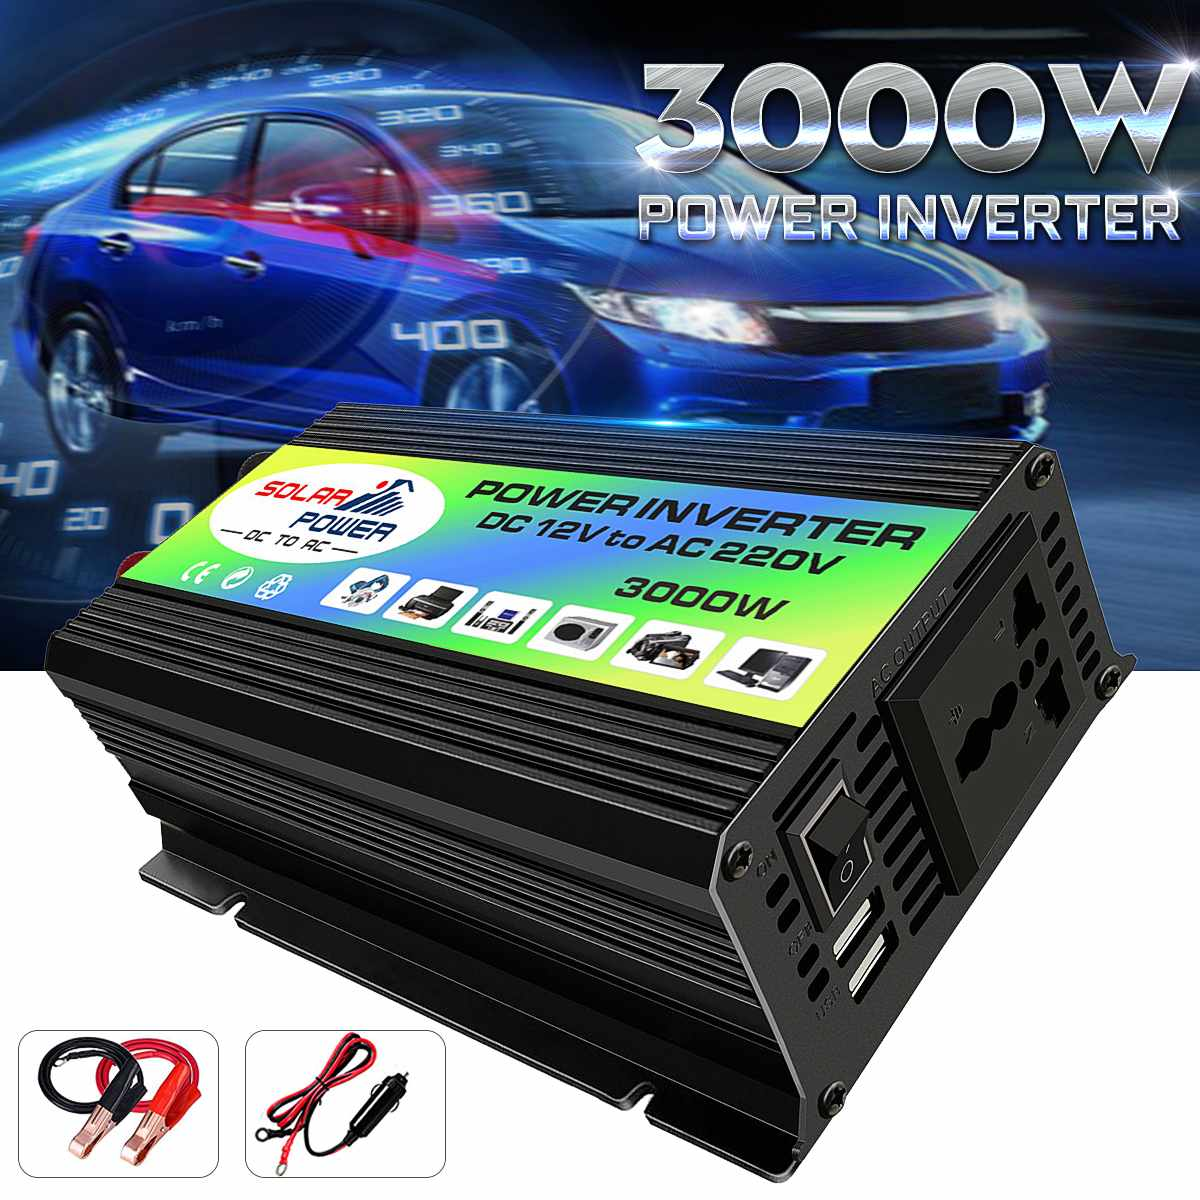 <font><b>3000W</b></font> Car <font><b>Inverter</b></font> Power <font><b>Inverter</b></font> DC <font><b>12V</b></font> to AC 220V Boat Voltage Power Converter USB Charger Converter with 2 USB image